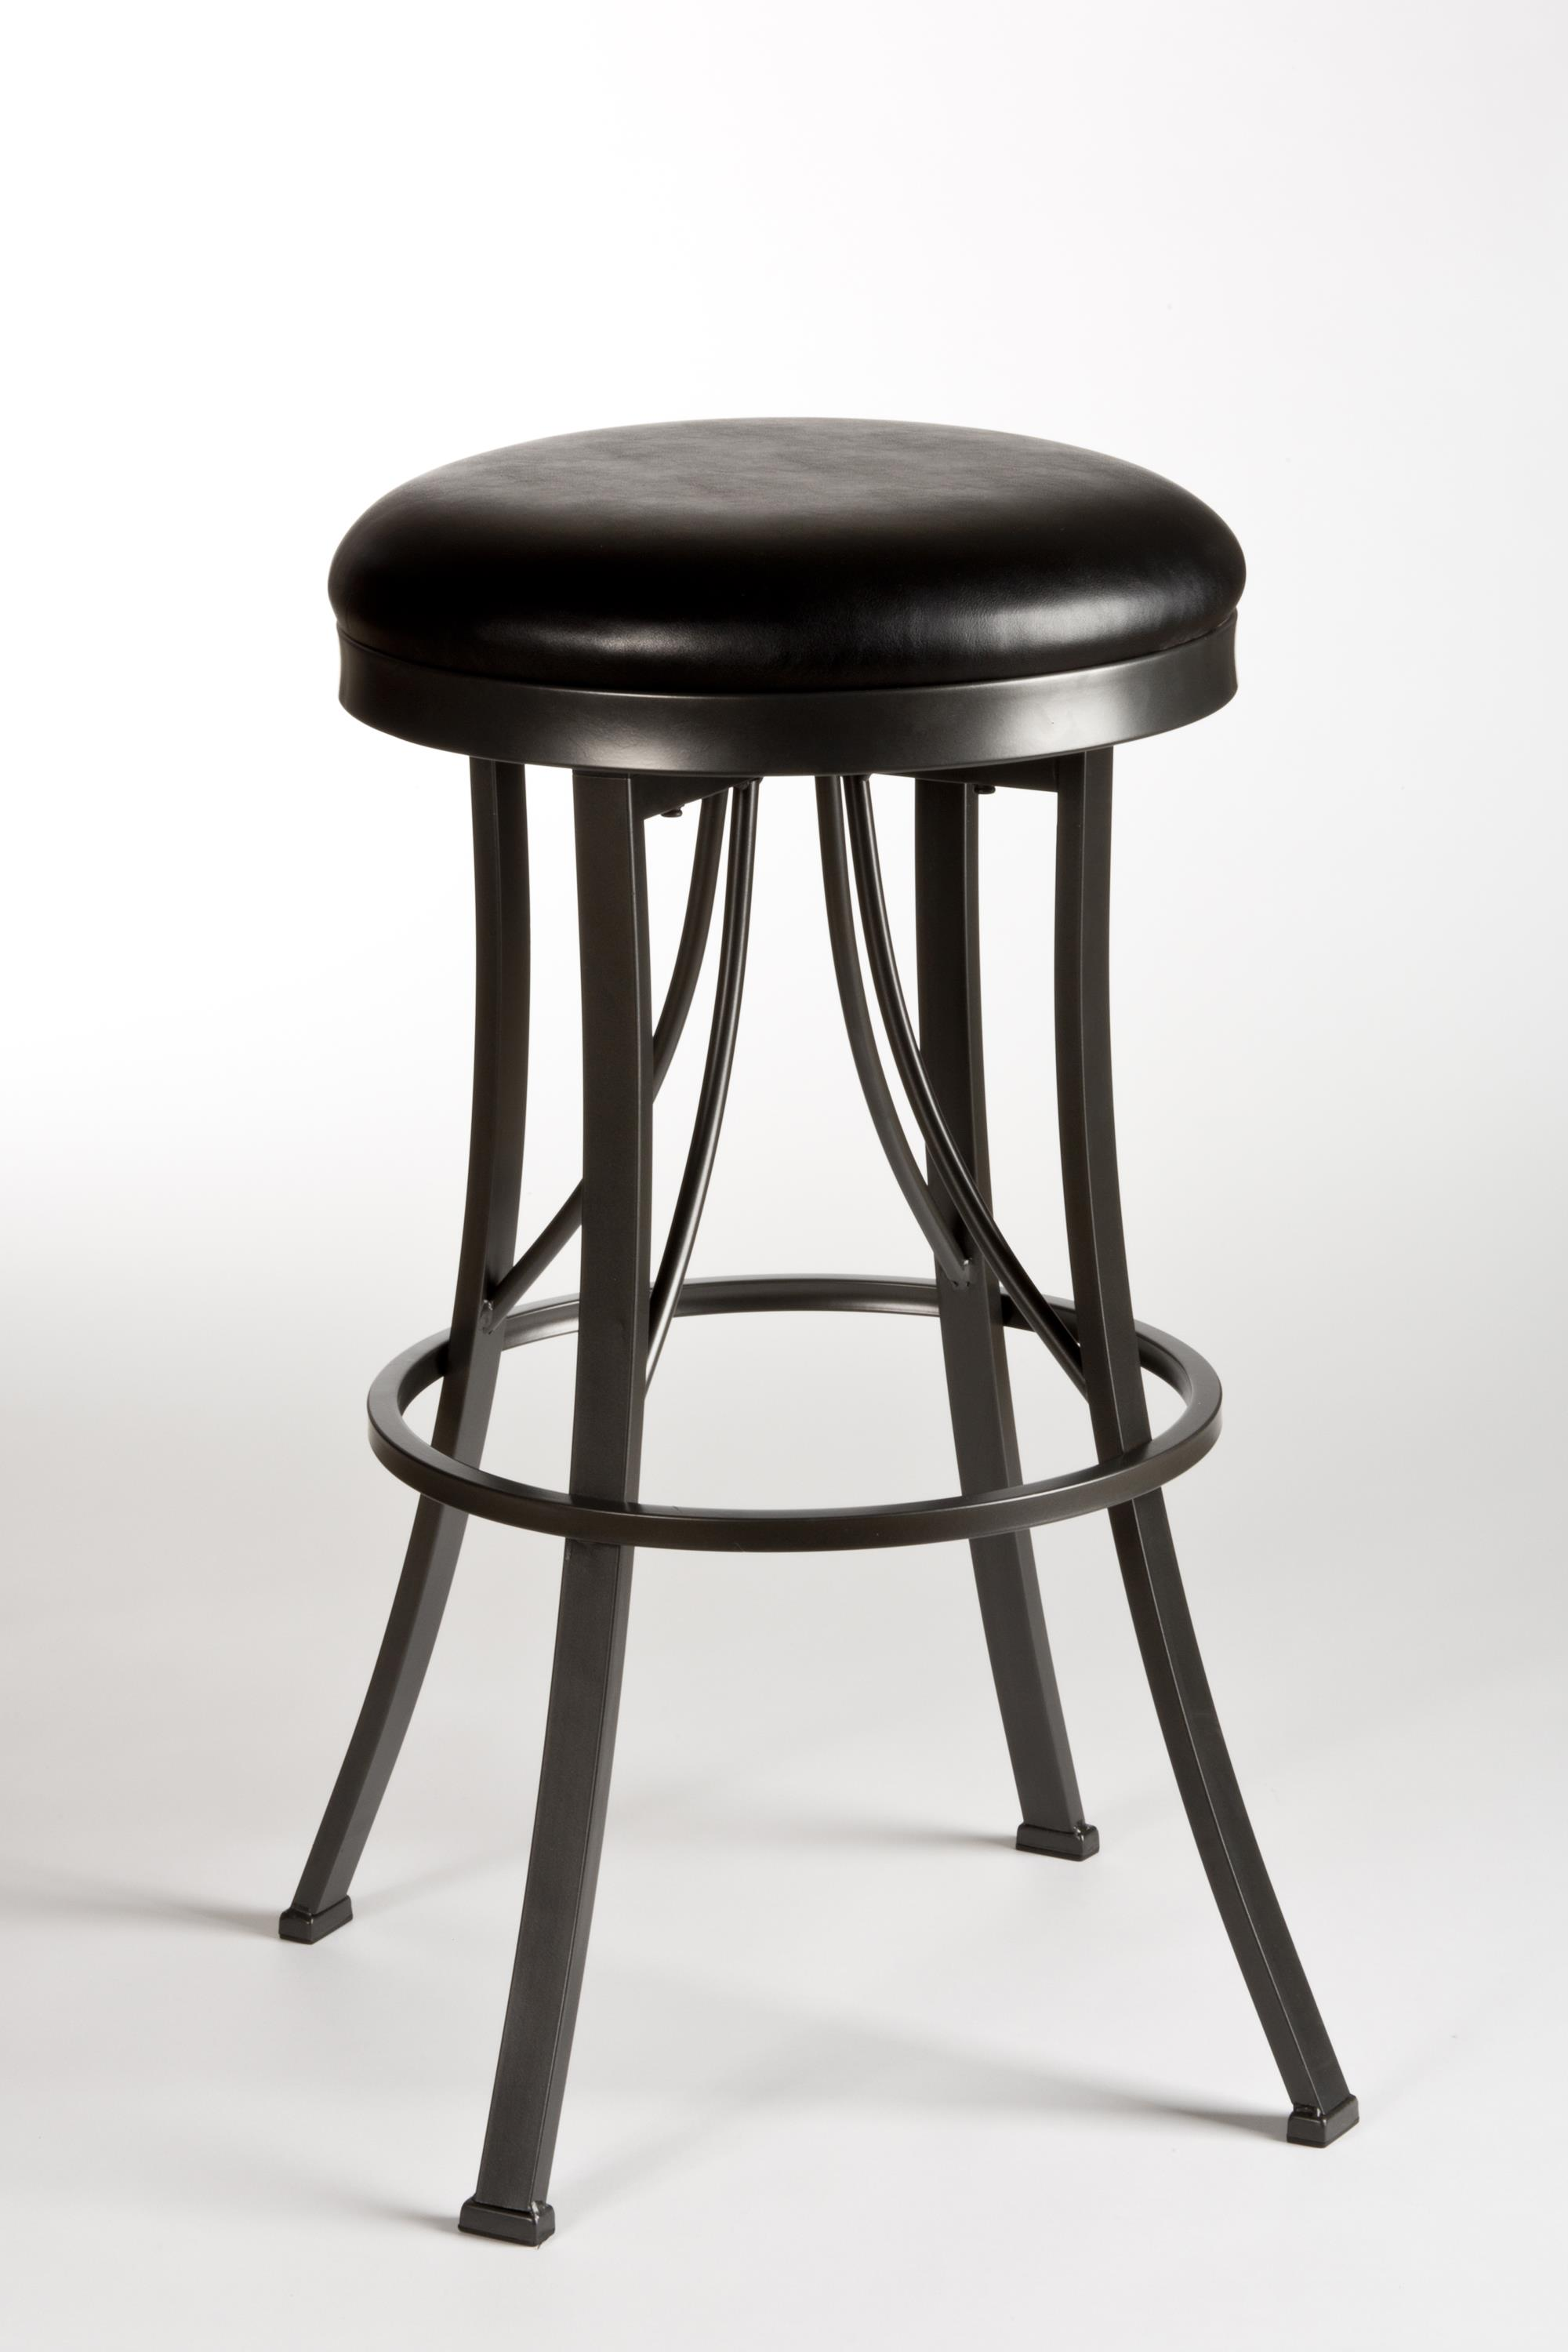 Hillsdale Metal Stools Ontario Backless Counter Stool - Item Number: 5149-826